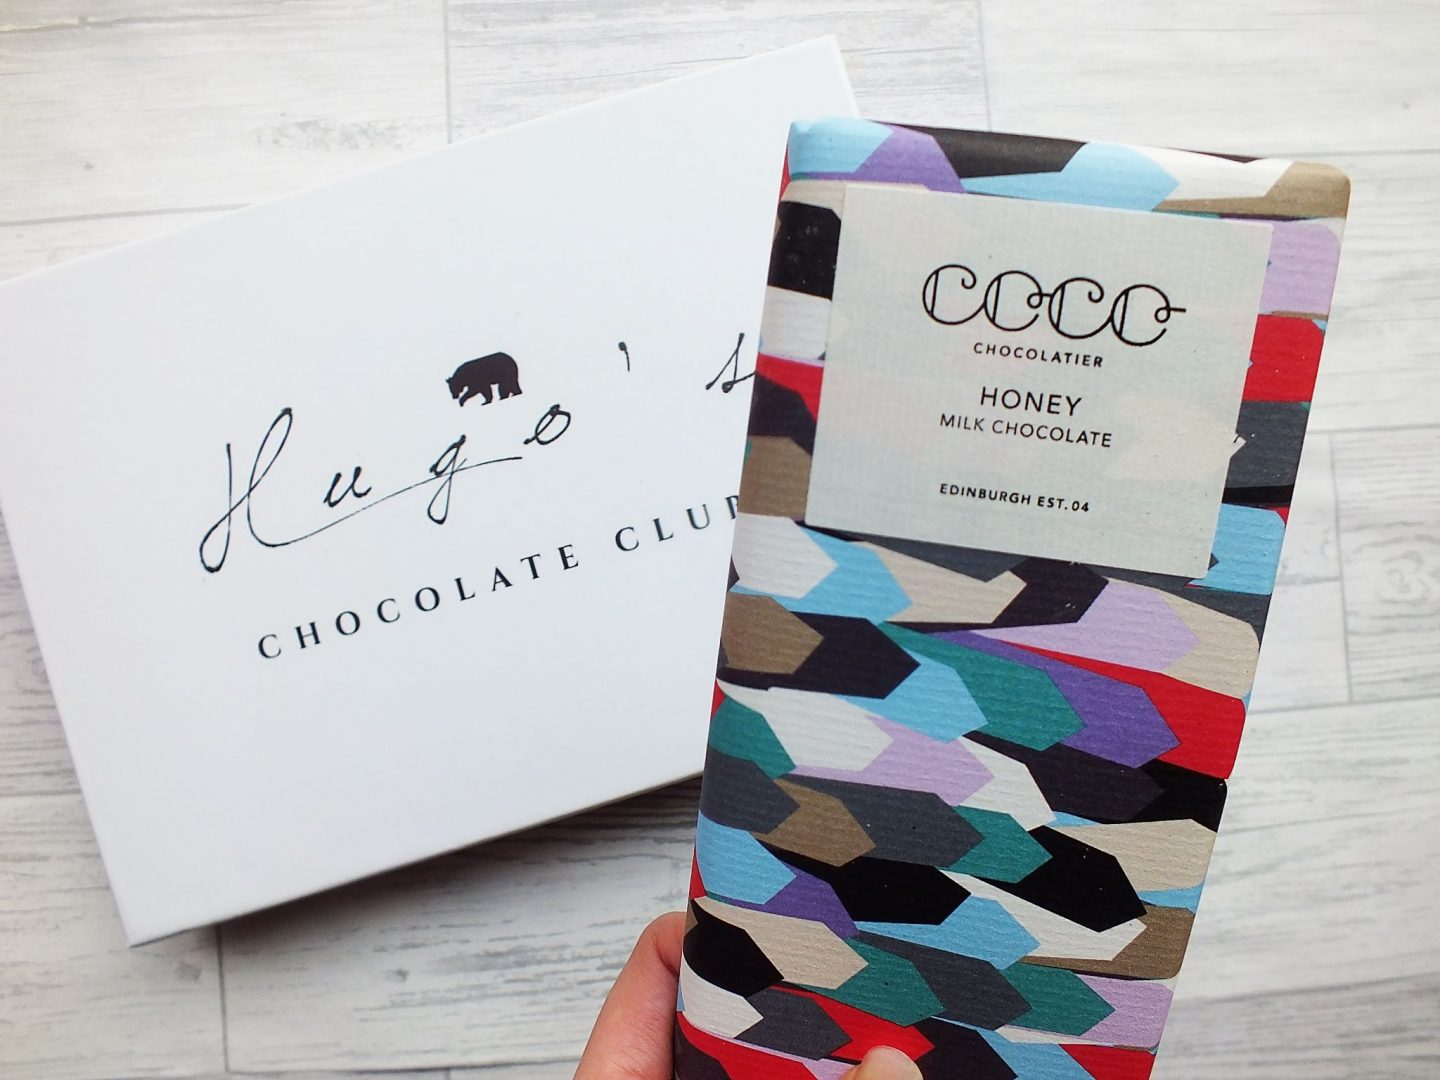 Coco Chocolatier multi-coloured chocolate bar in wrapper being held above Hugo's Chocolate Club box on grey wood background